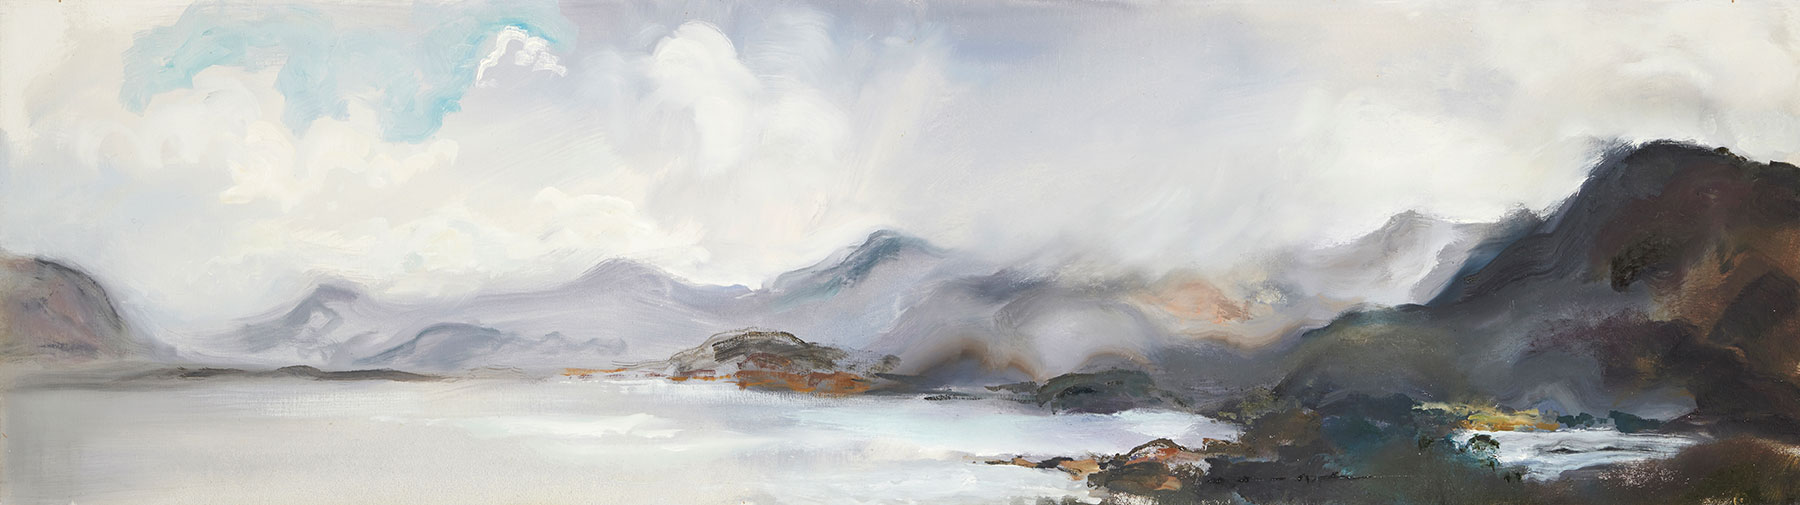 Loch Torridon, Clearing Skies, 1971, 43 x 151.5 cm, oil on canvas